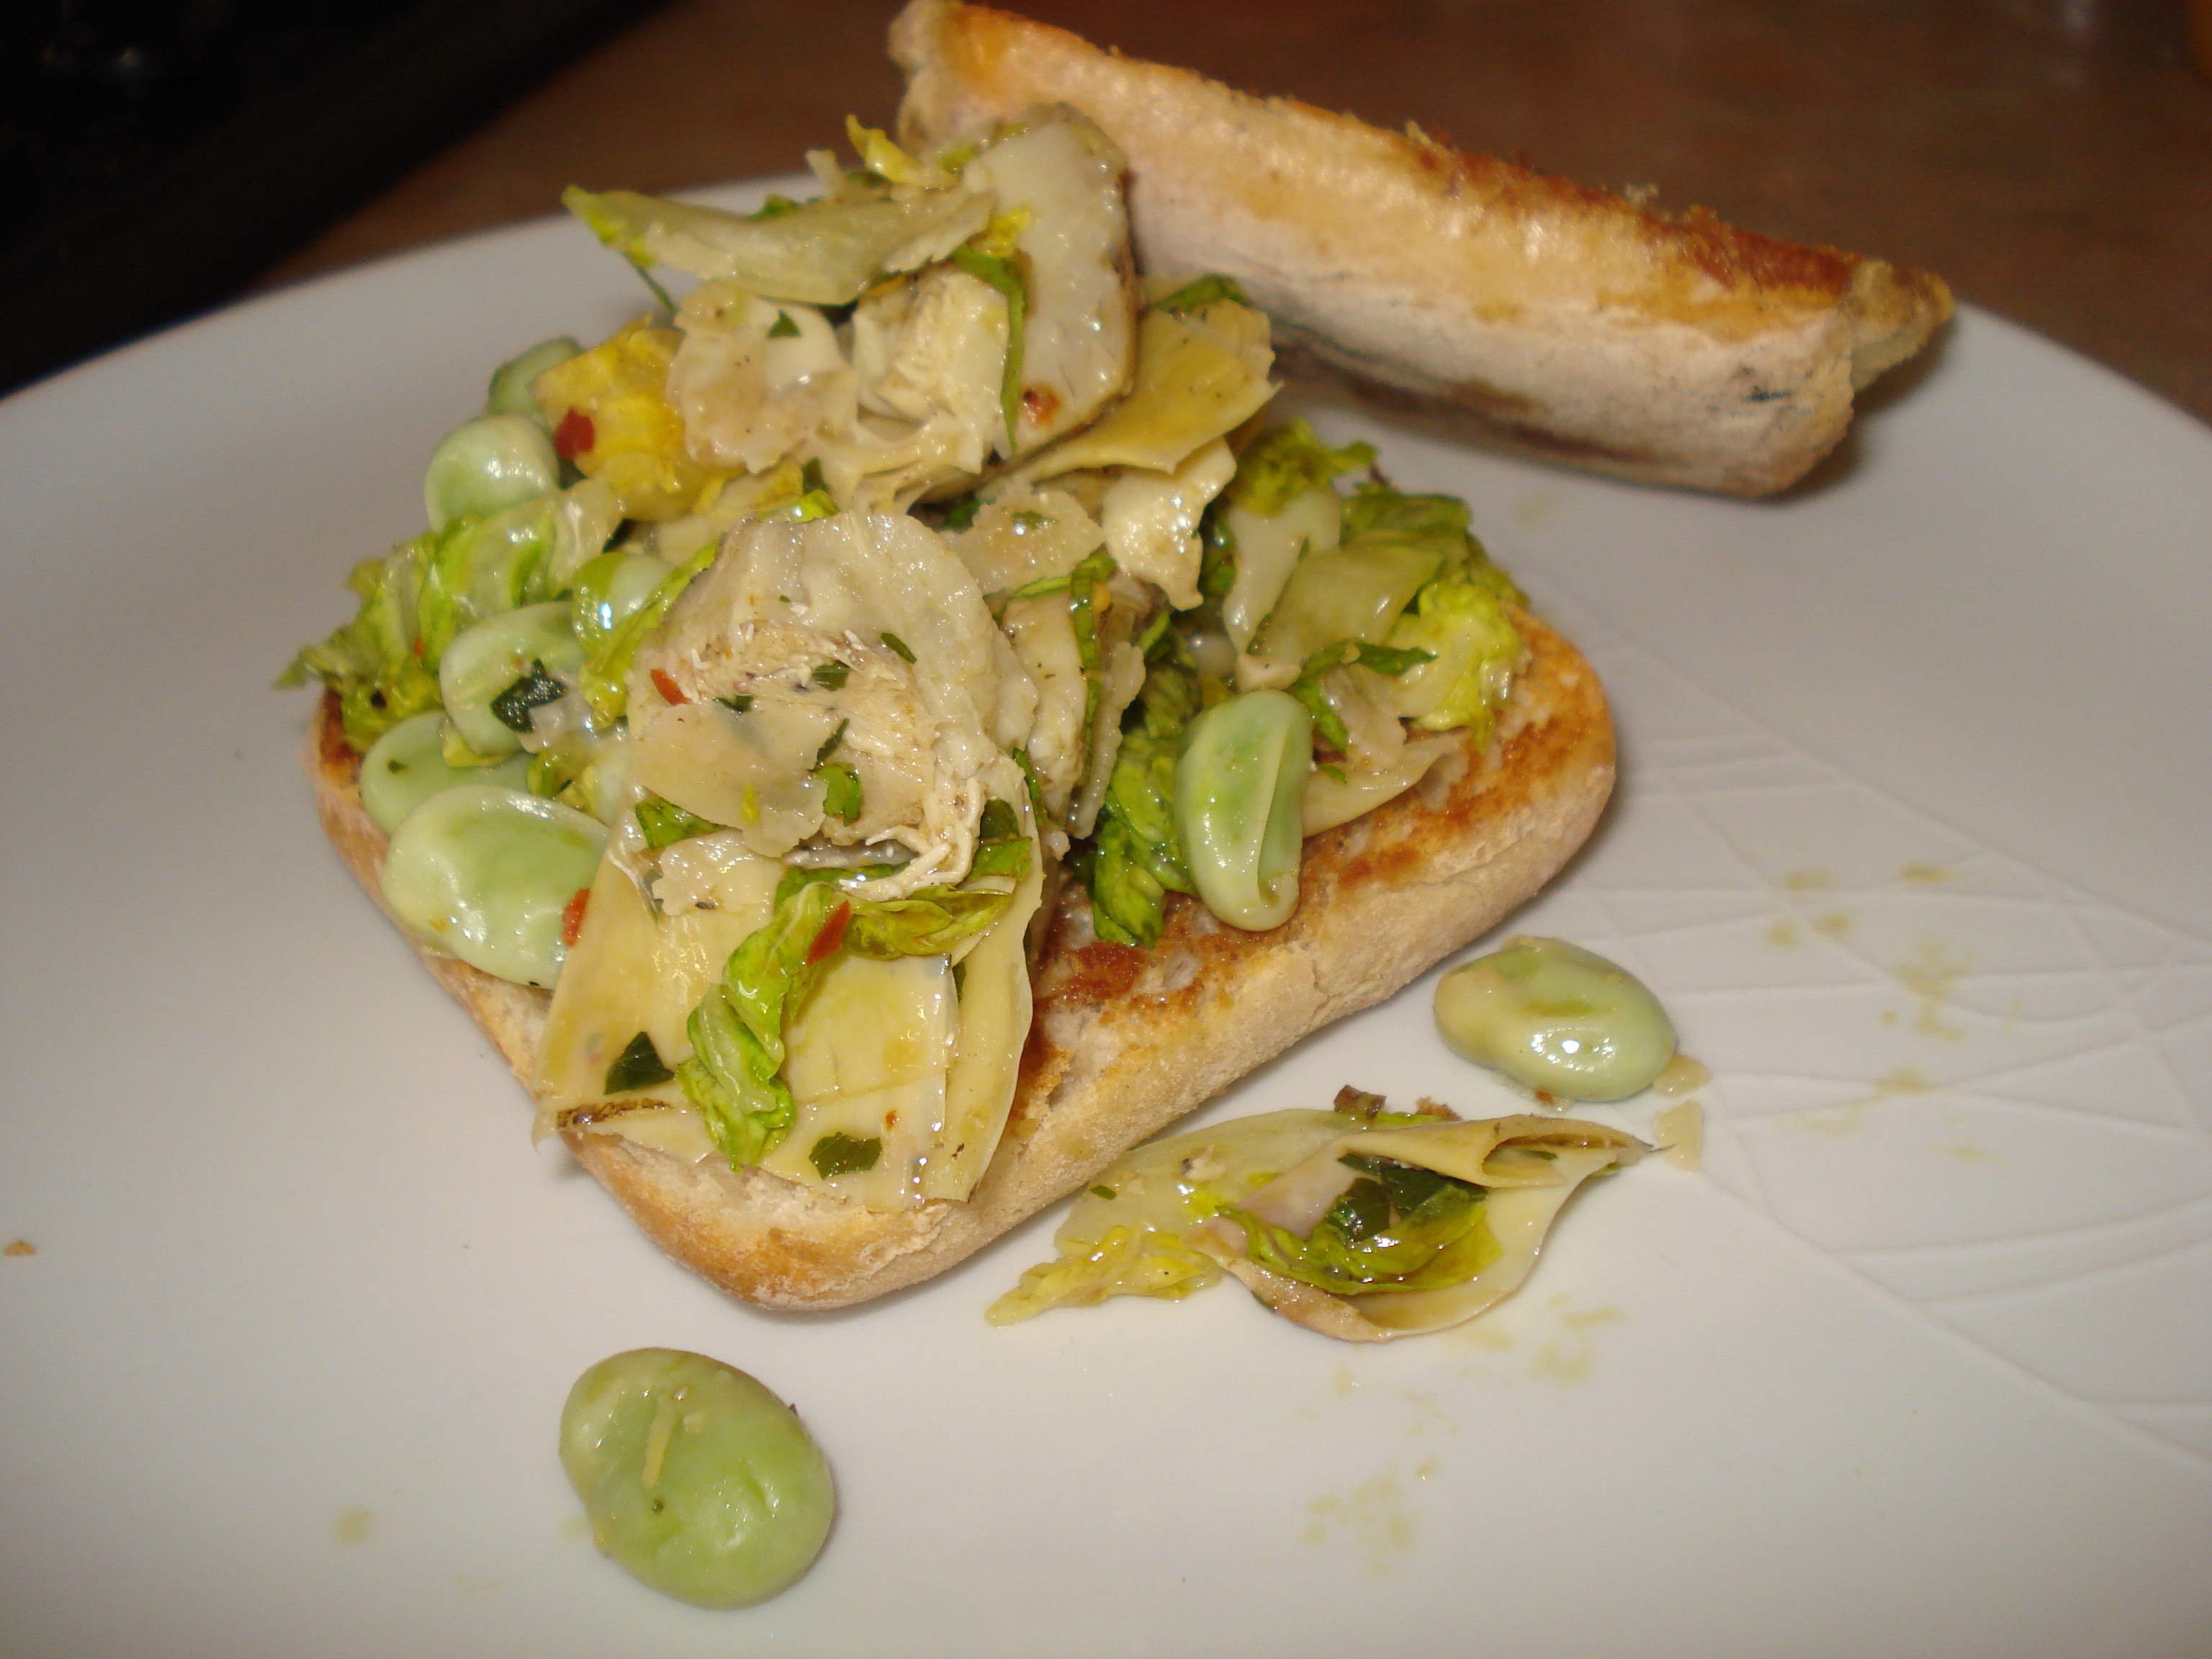 broad bean and artichoke salad on ciabatta